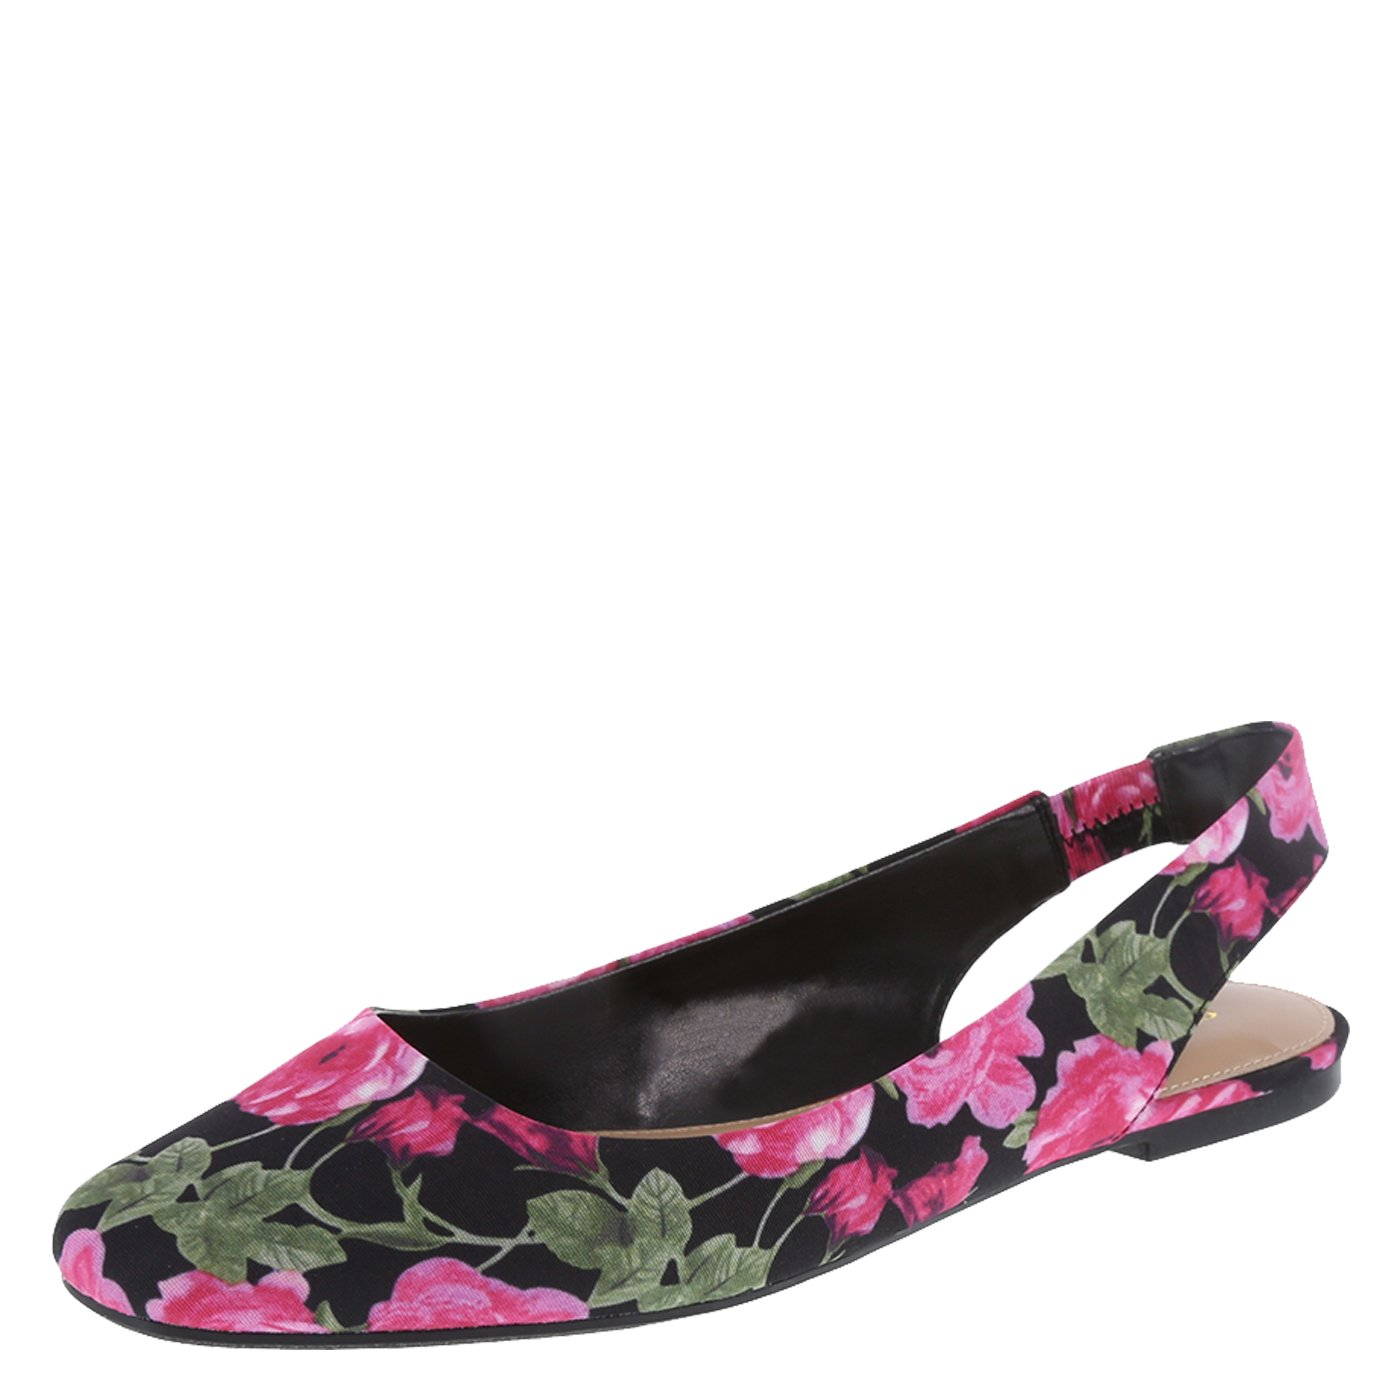 fca9f4f3152 Christian Siriano for Payless Women s Black Floral Fabric Bette Slingback  Flat 9.5 Wide